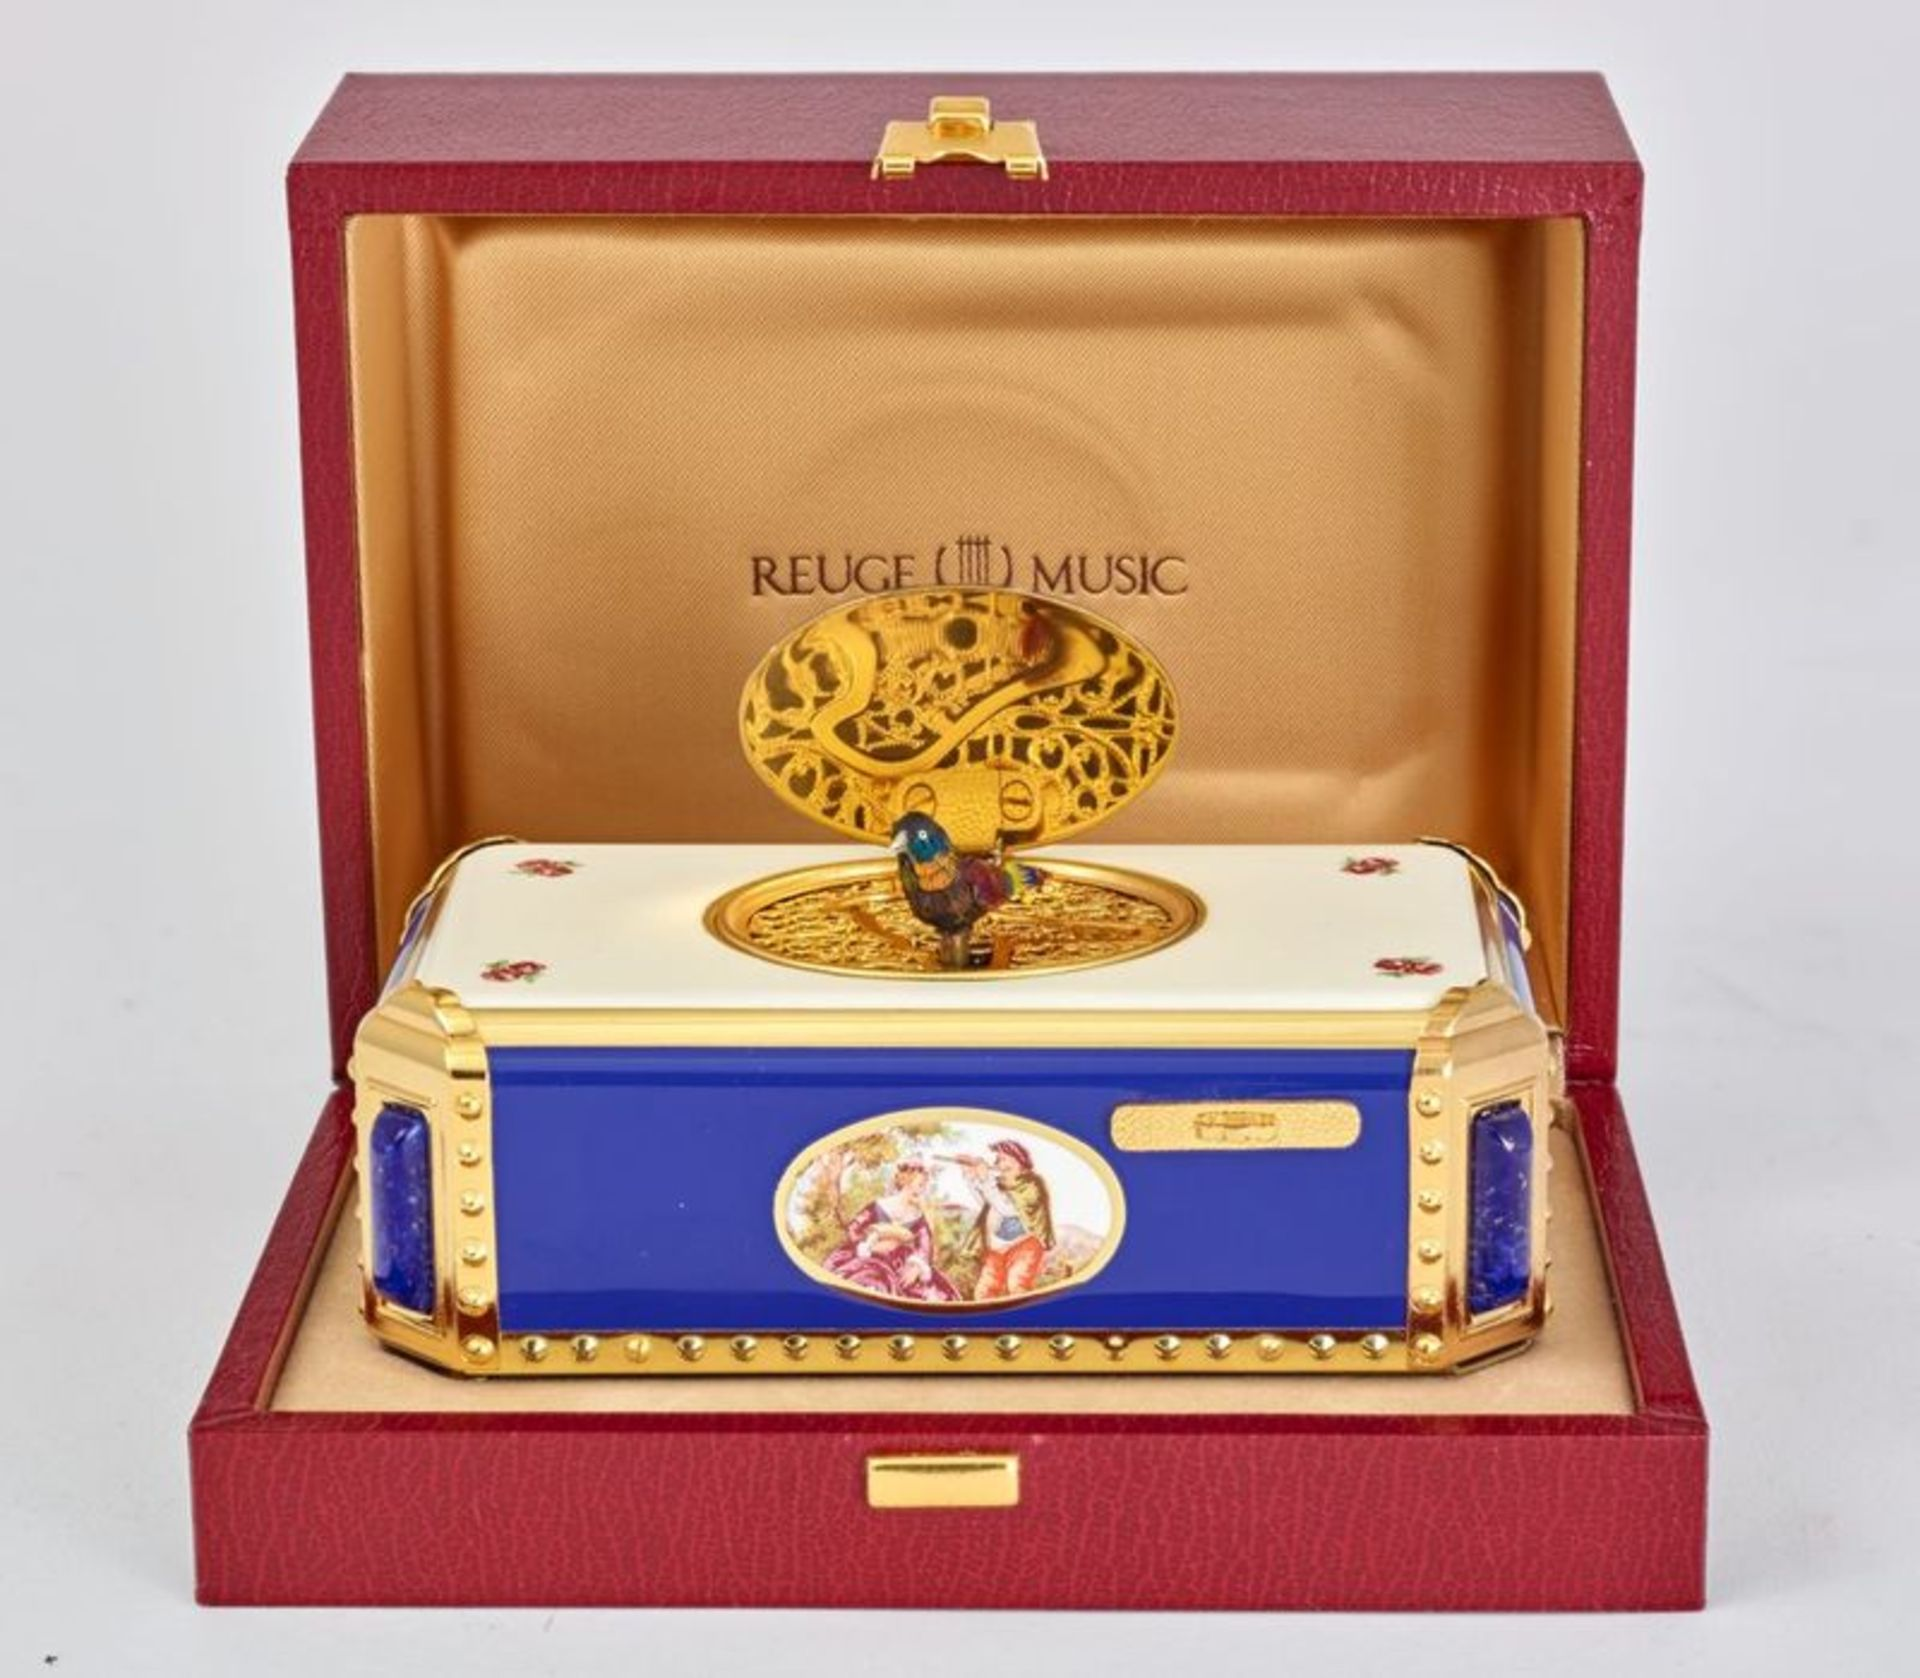 BIRD ROTATING SINGING BOX Enameled music box, Reuge Music Saintes-Croix, [...]